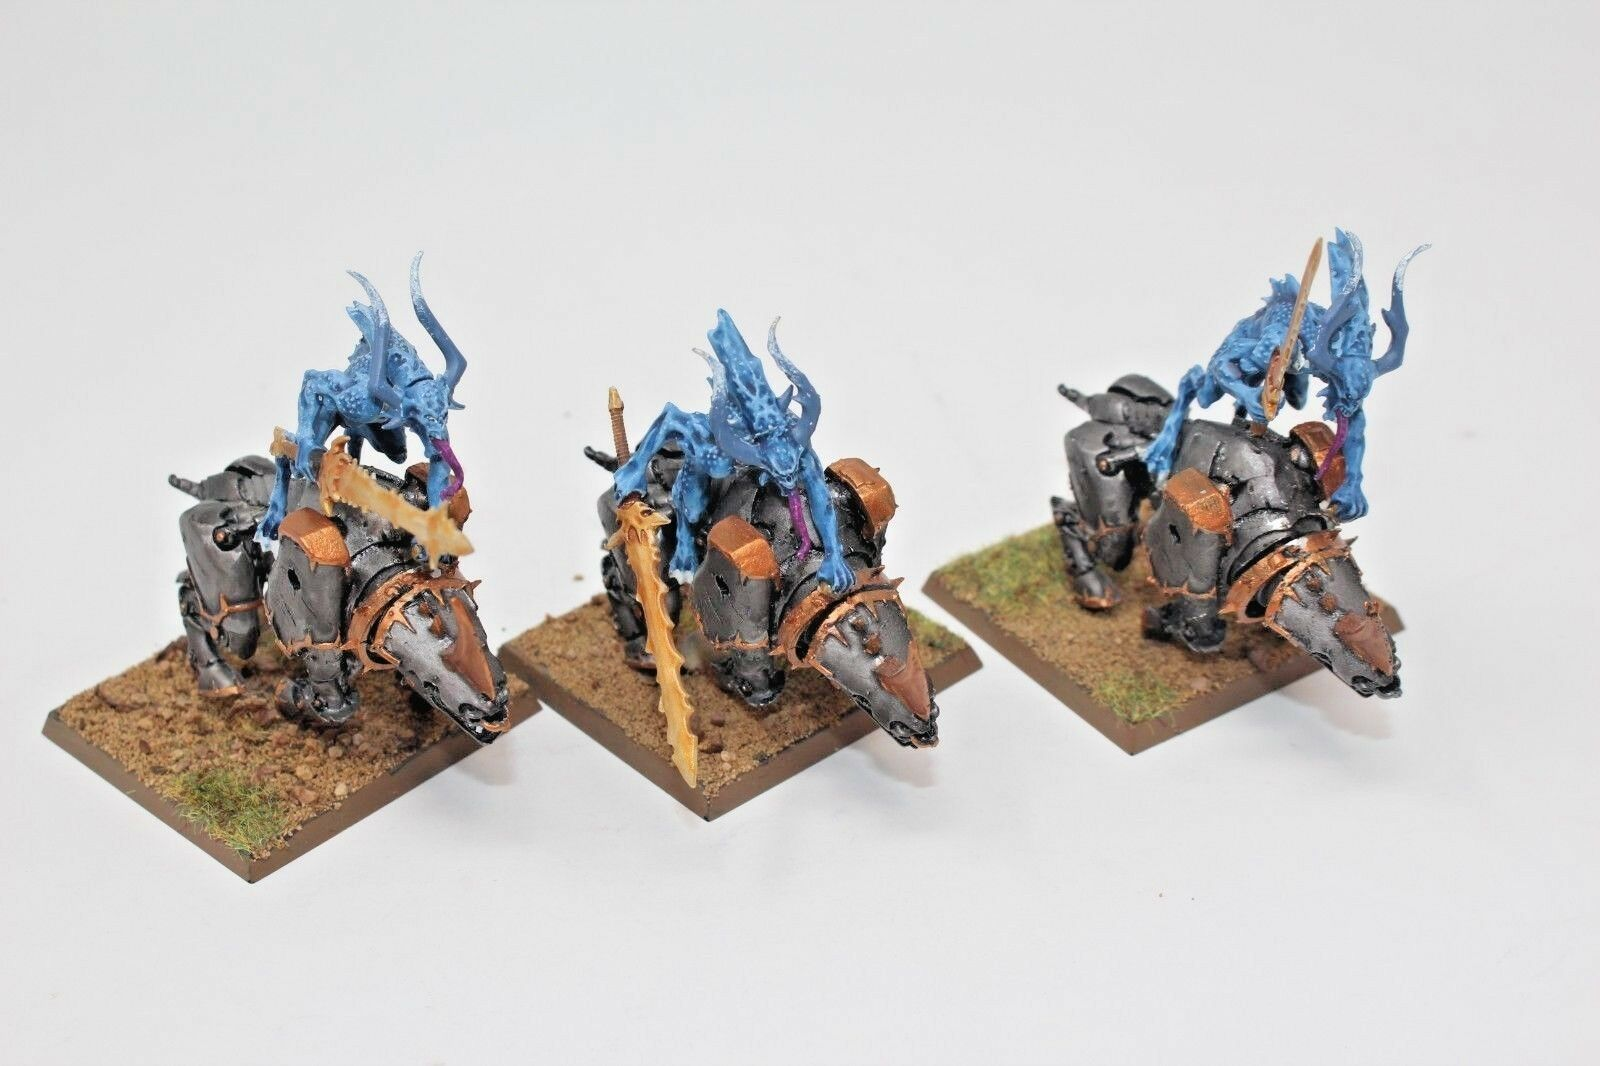 Warhammer Chaos Daemons Bloodcrusher Well Painted - JYS20